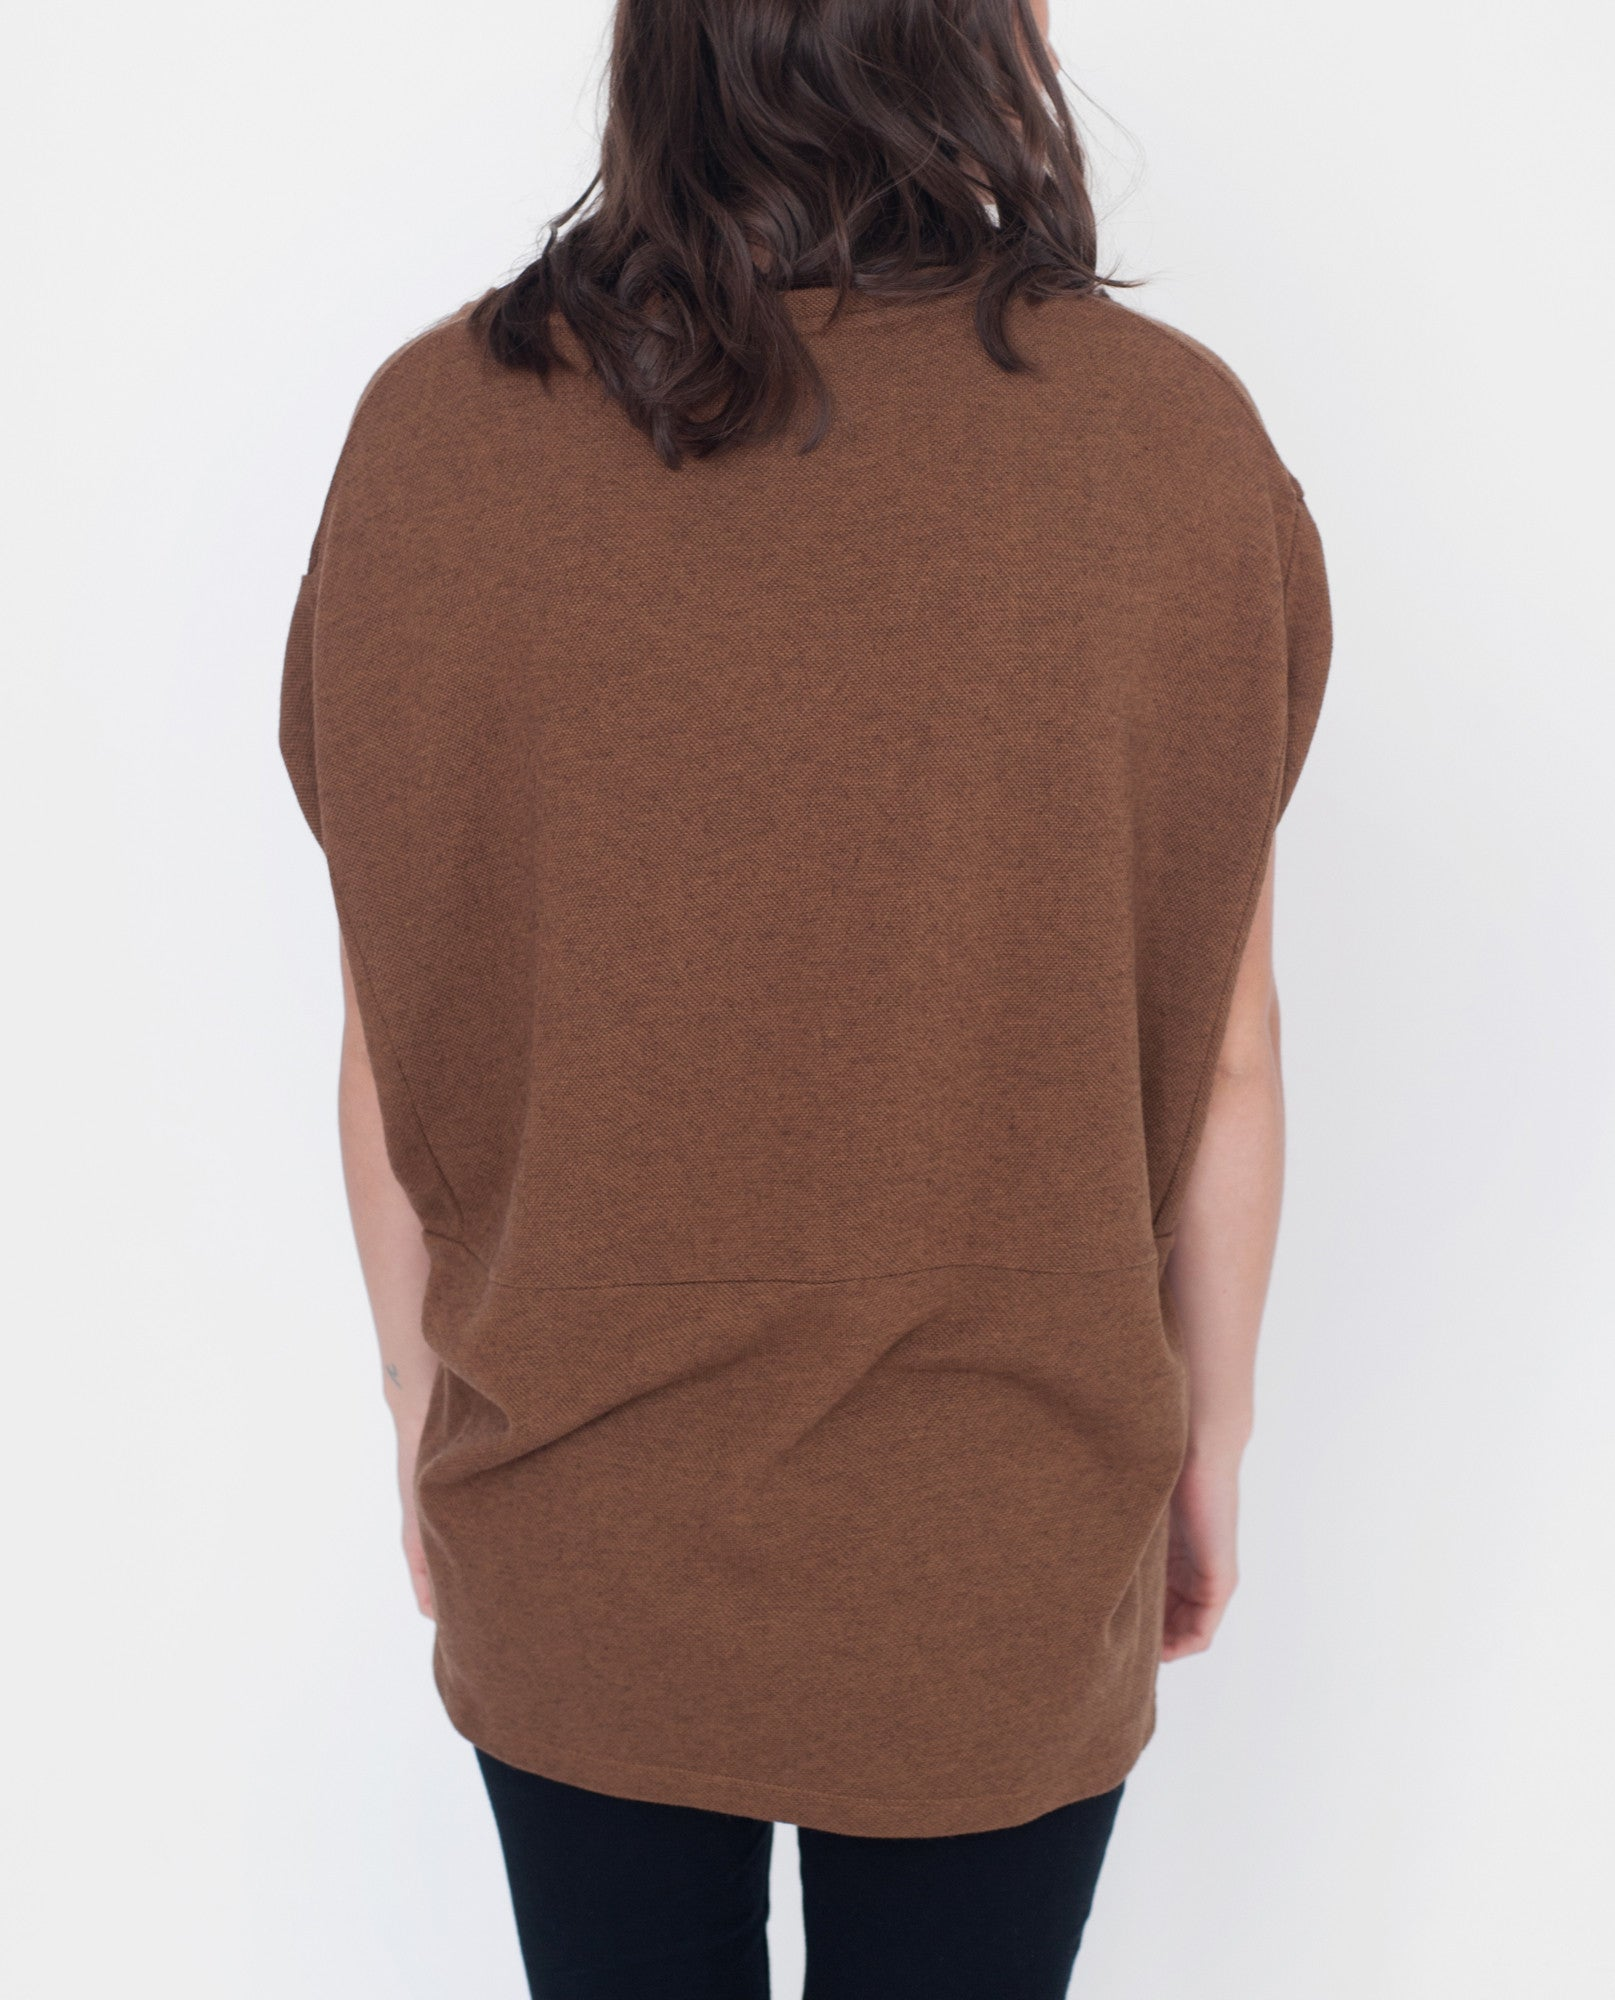 REID-MAY Lyocell And Wool Top from Beaumont Organic